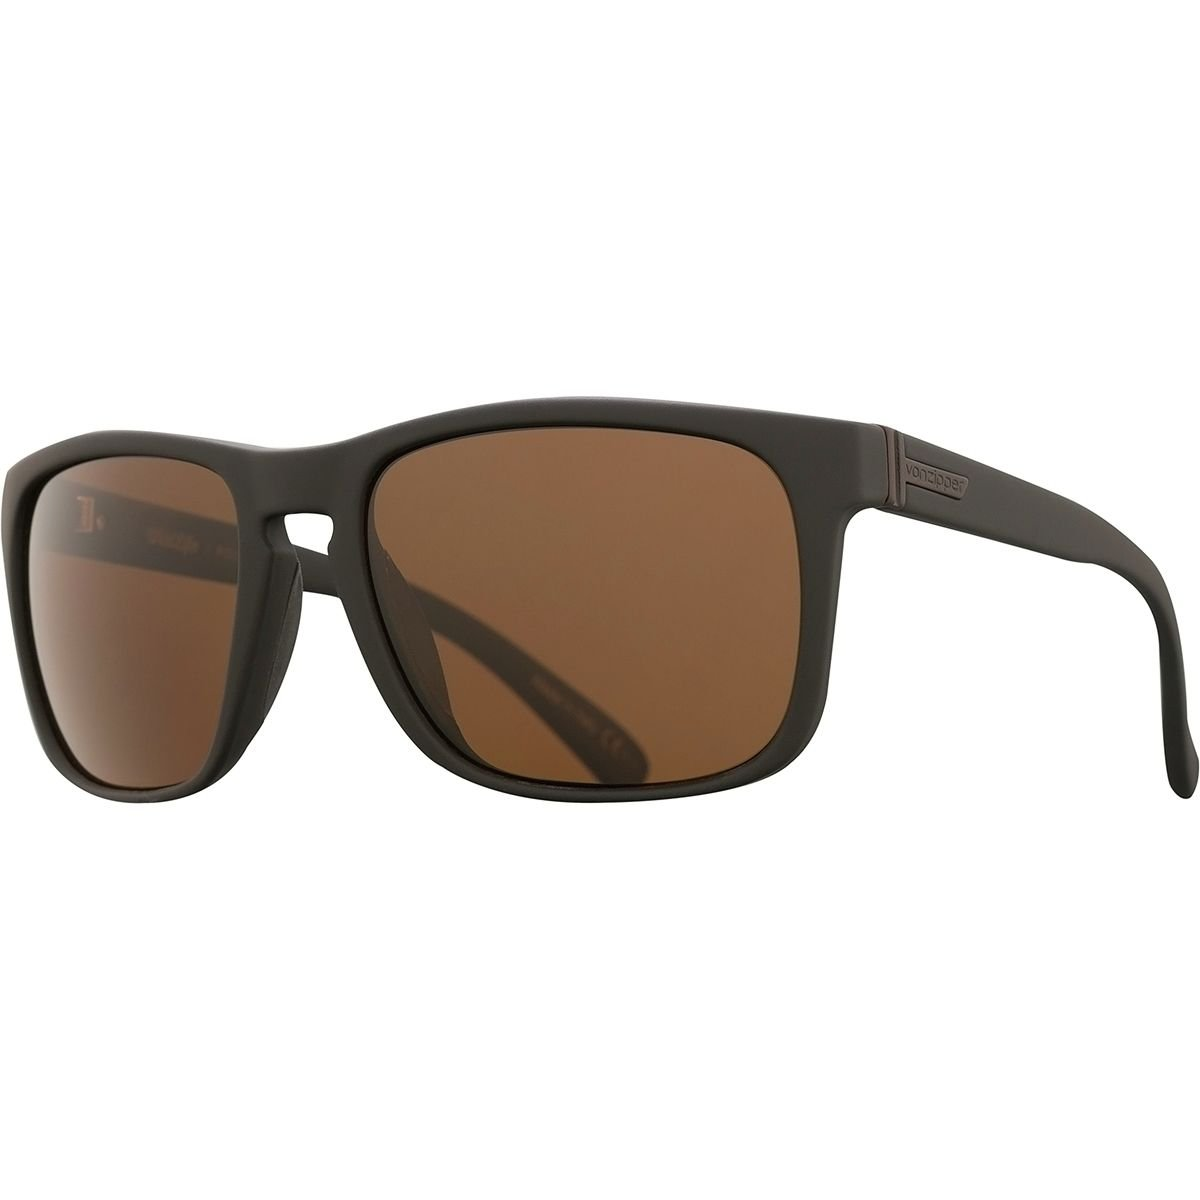 06bf1aae533 VonZipper Lomax Wildlife Polarized Sunglasses Black Soft Satin Wild Bronze  Polar